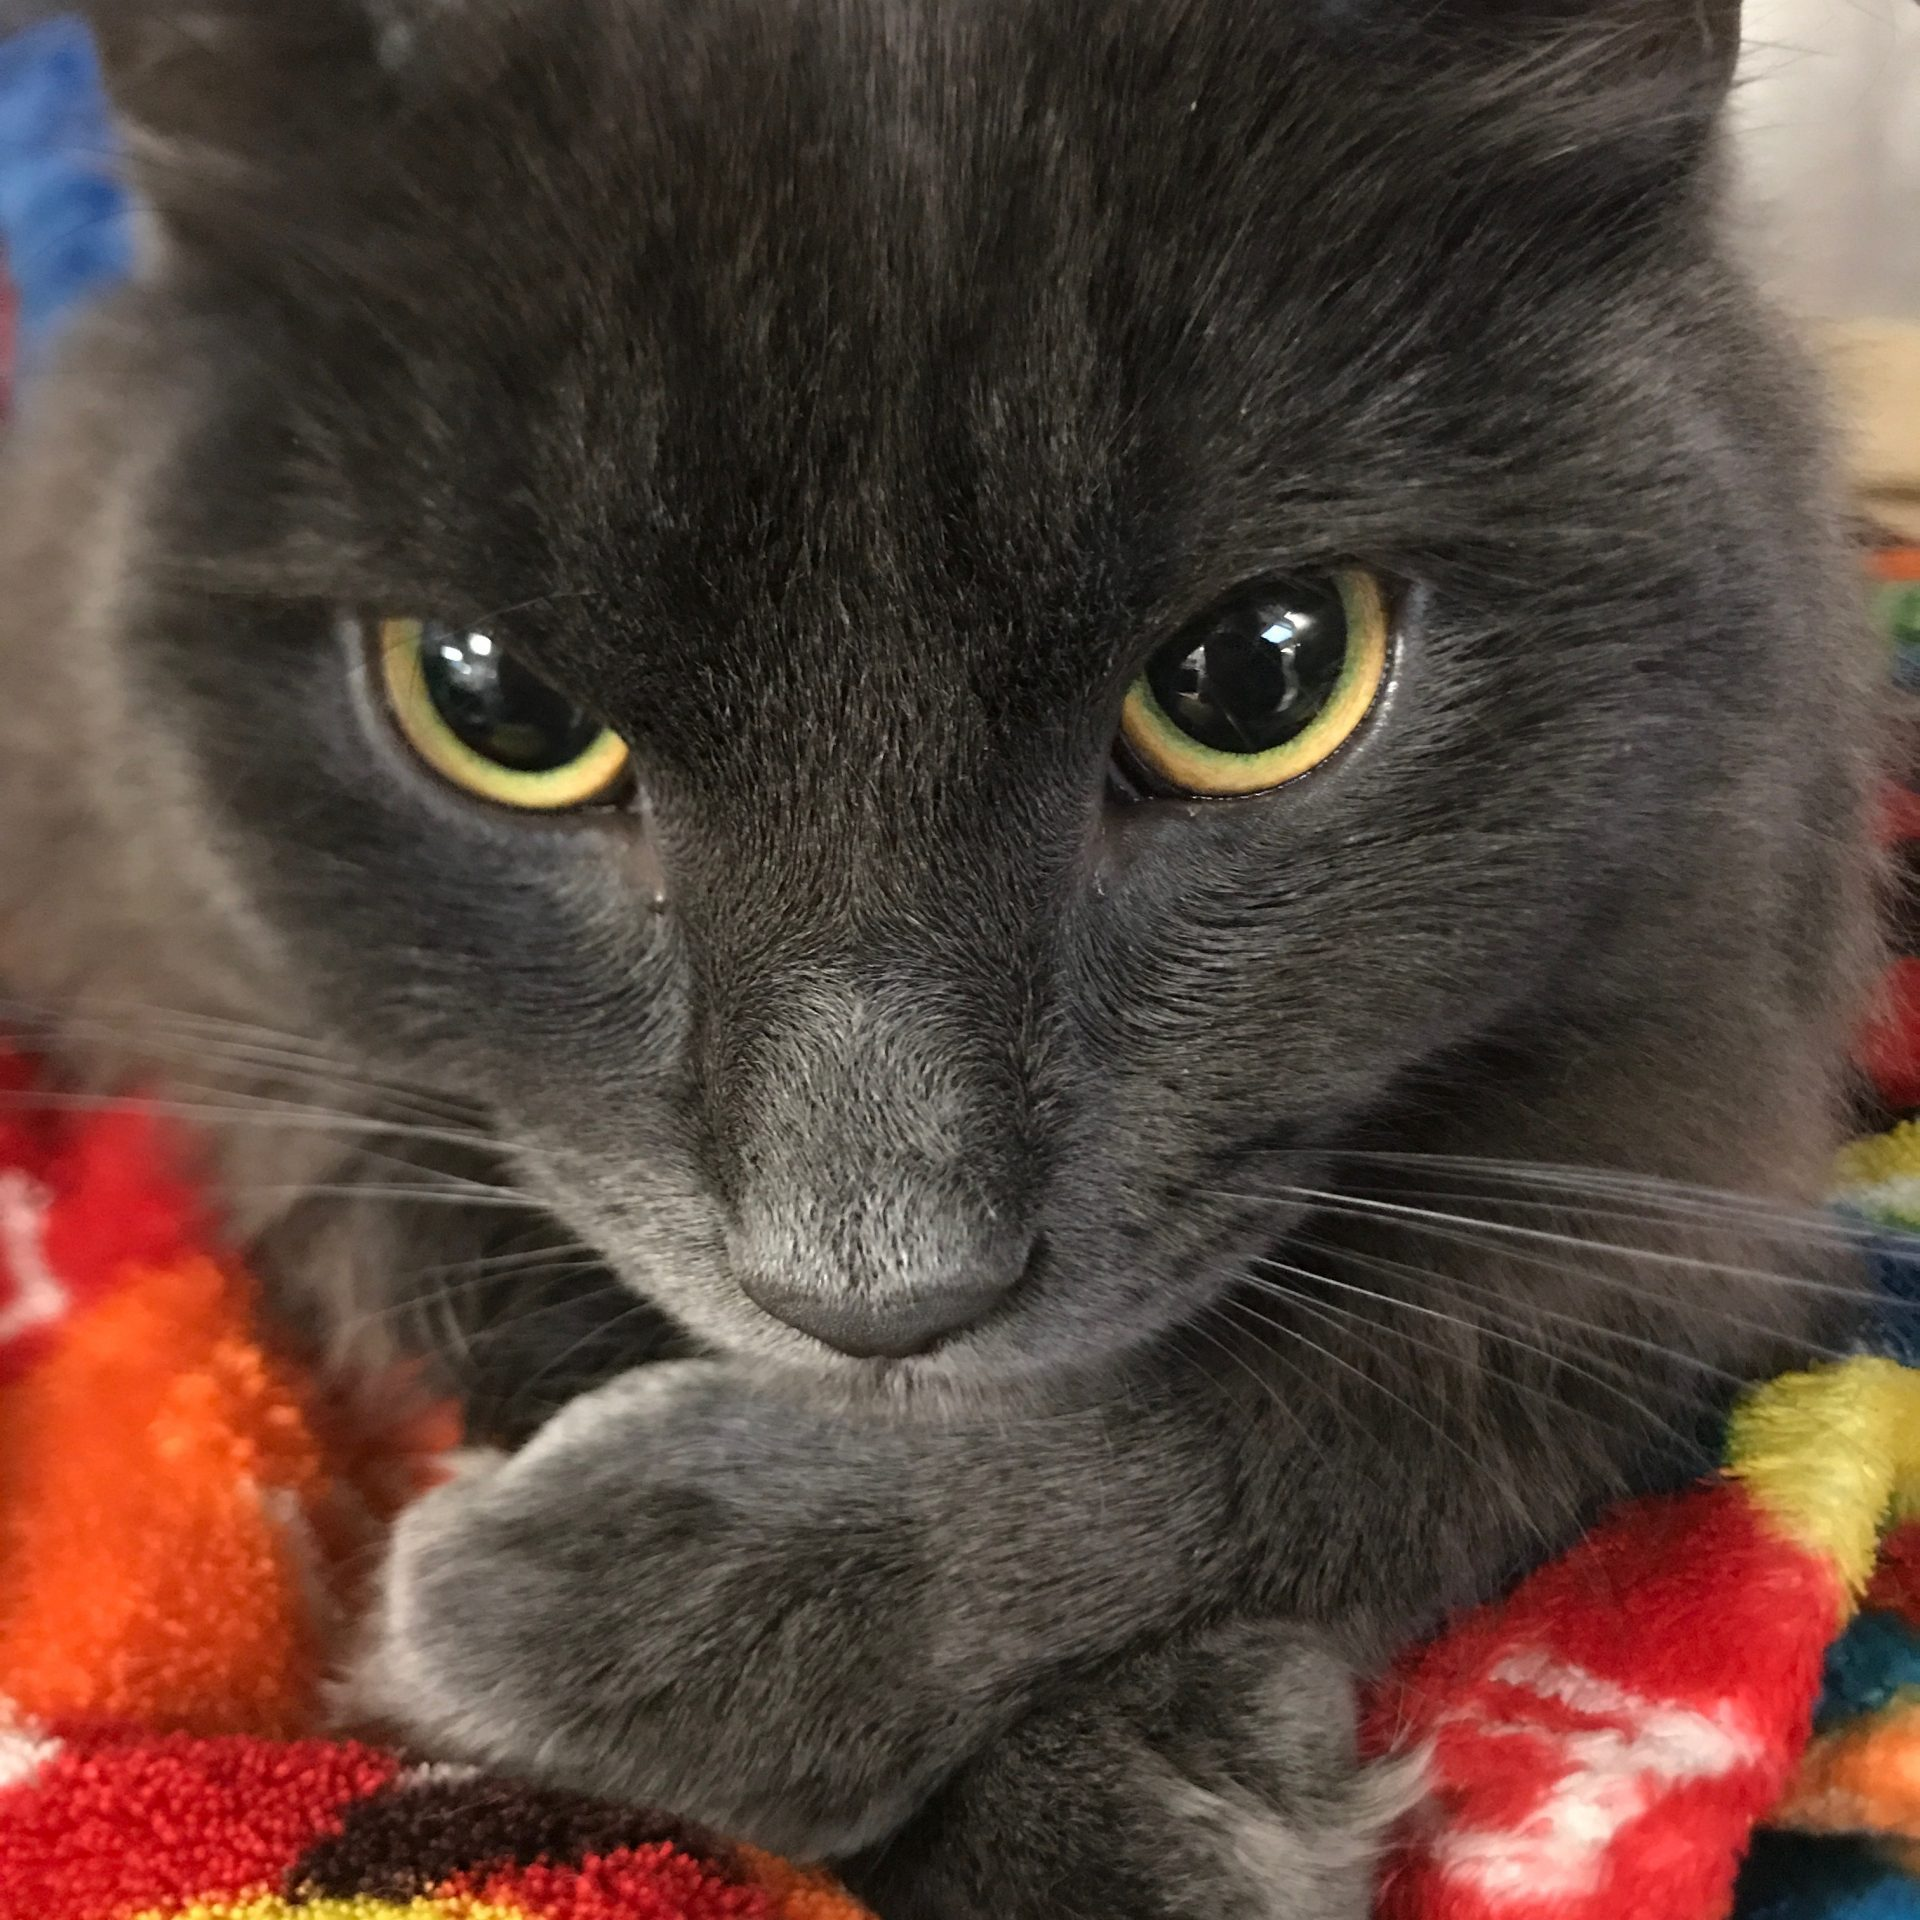 A cat sits with his paws crossed on a colorful blanket